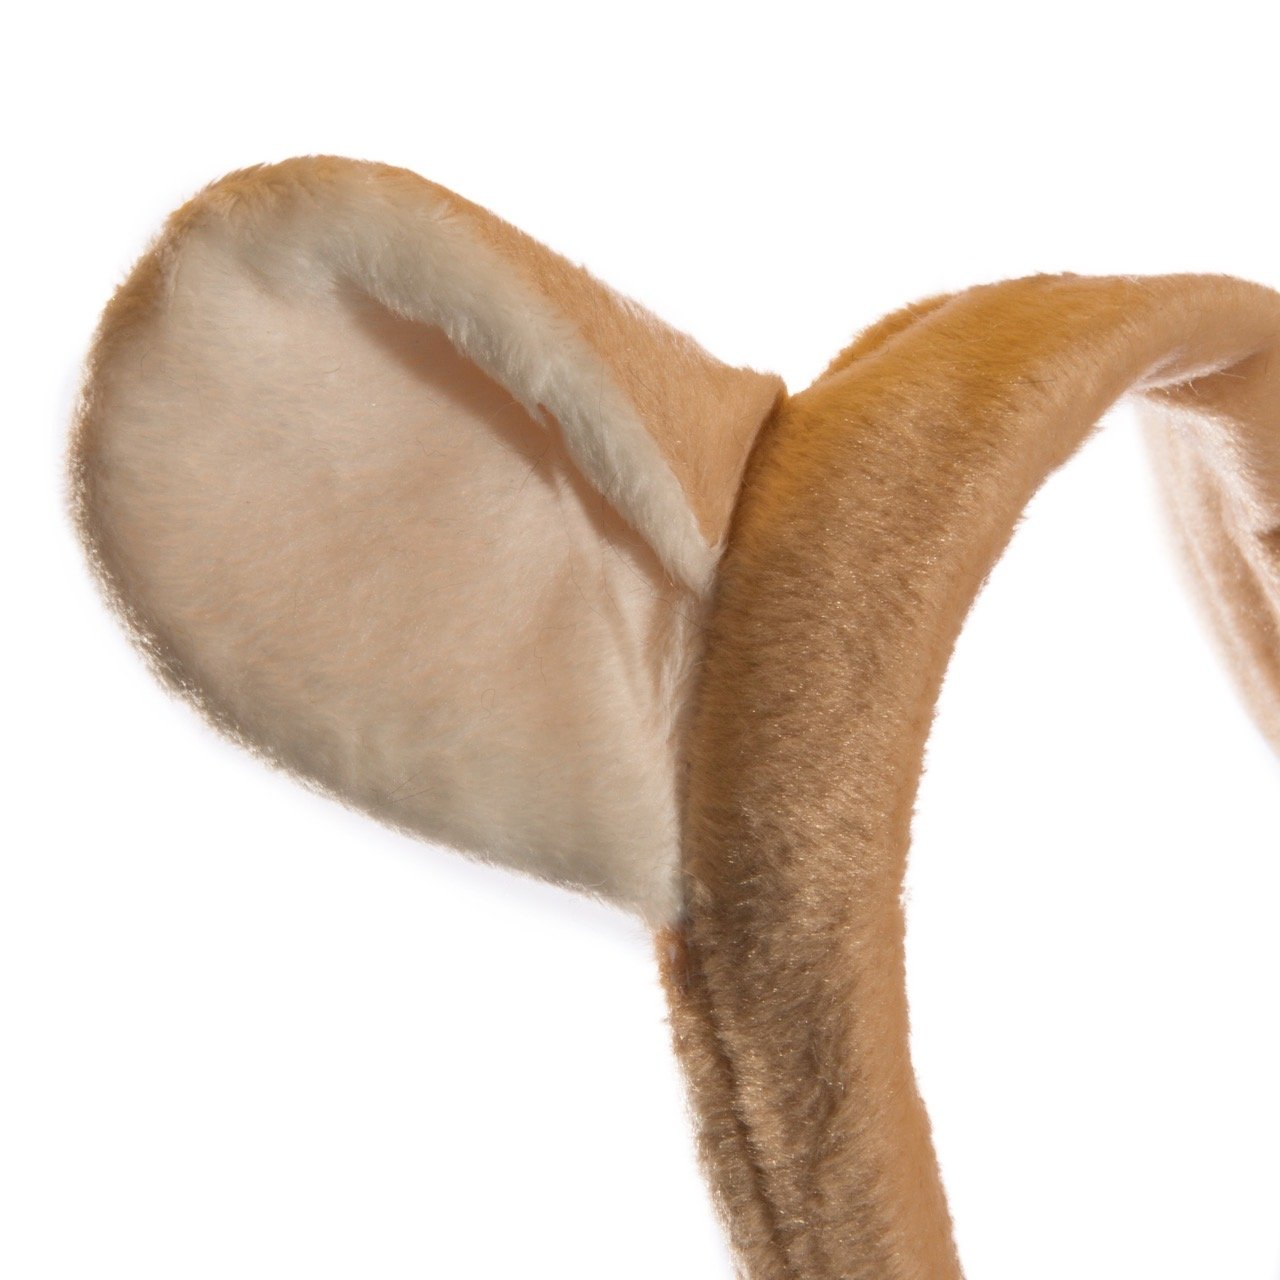 Wildlife Tree Plush Mountain Lion Ears Headband Accessory for Cougar Costume, Cosplay, Pretend Animal Play Safari Party Costumes by Wildlife Tree (Image #3)